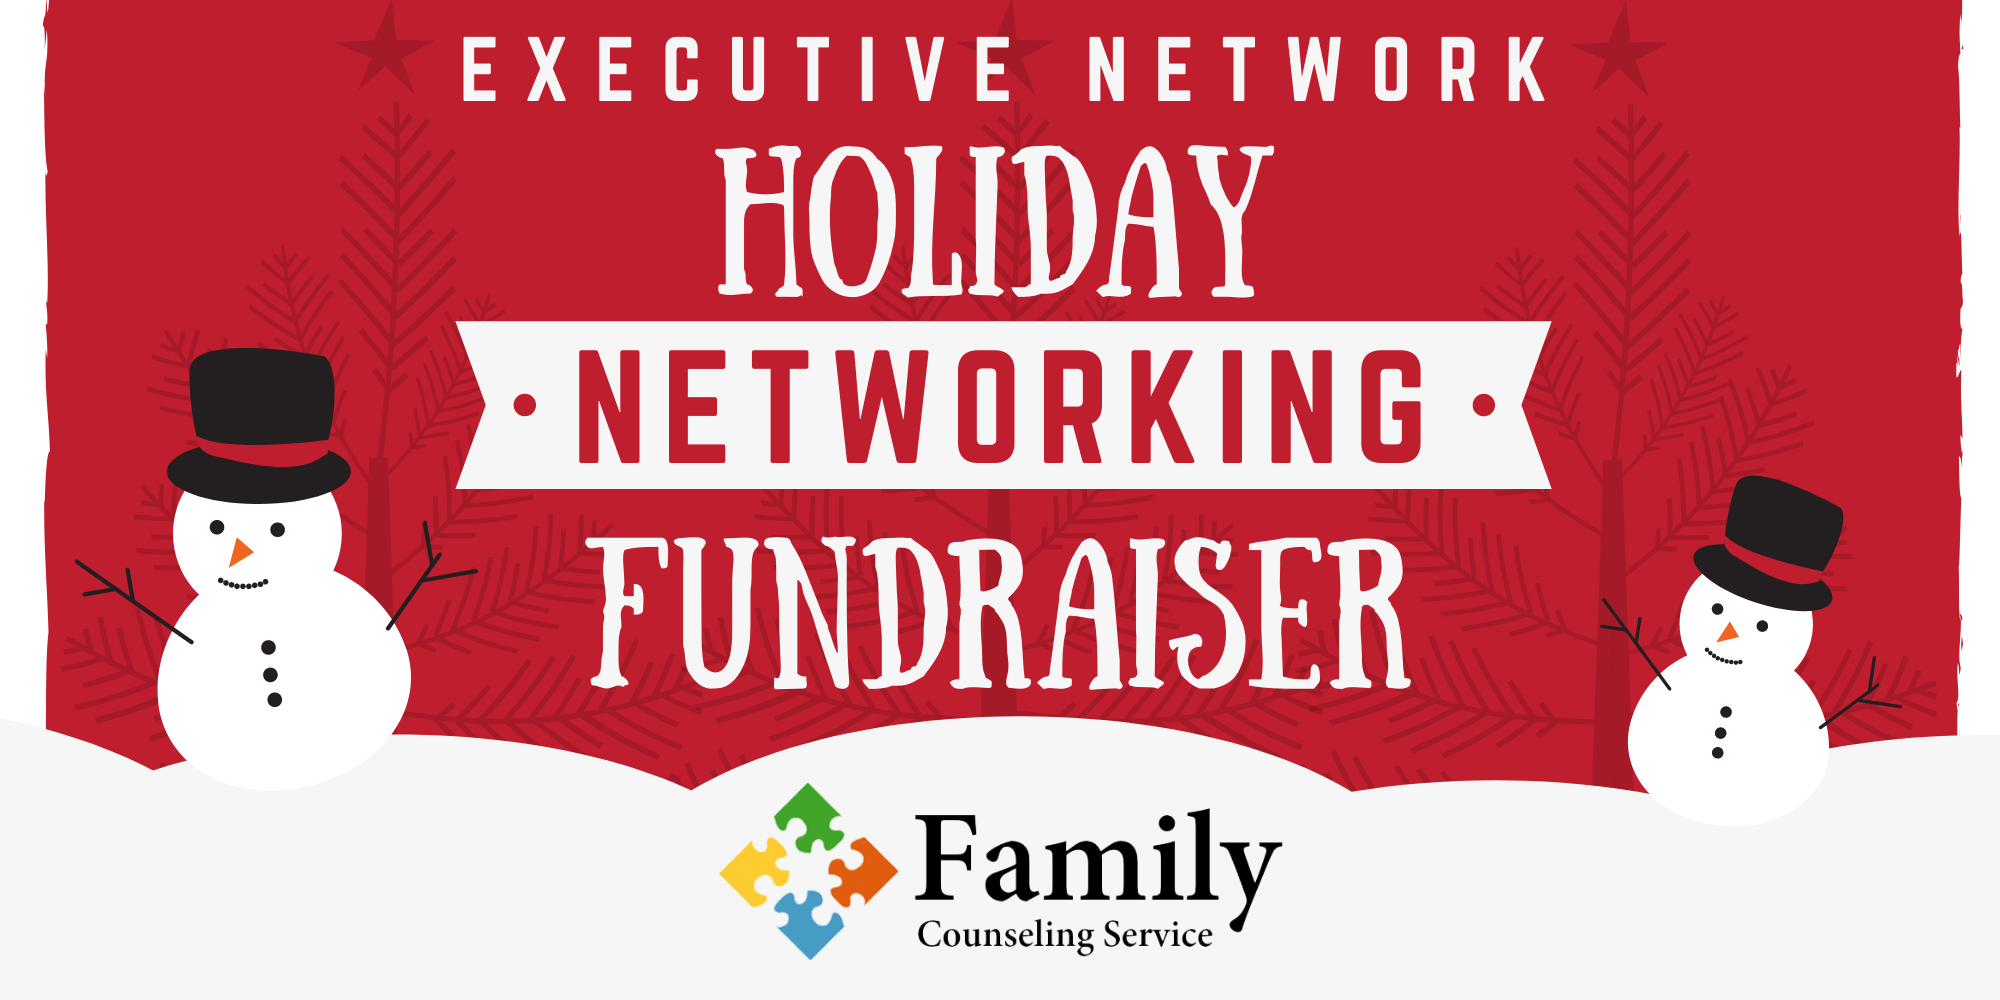 Executive Network: Holiday Networking Fundraiser